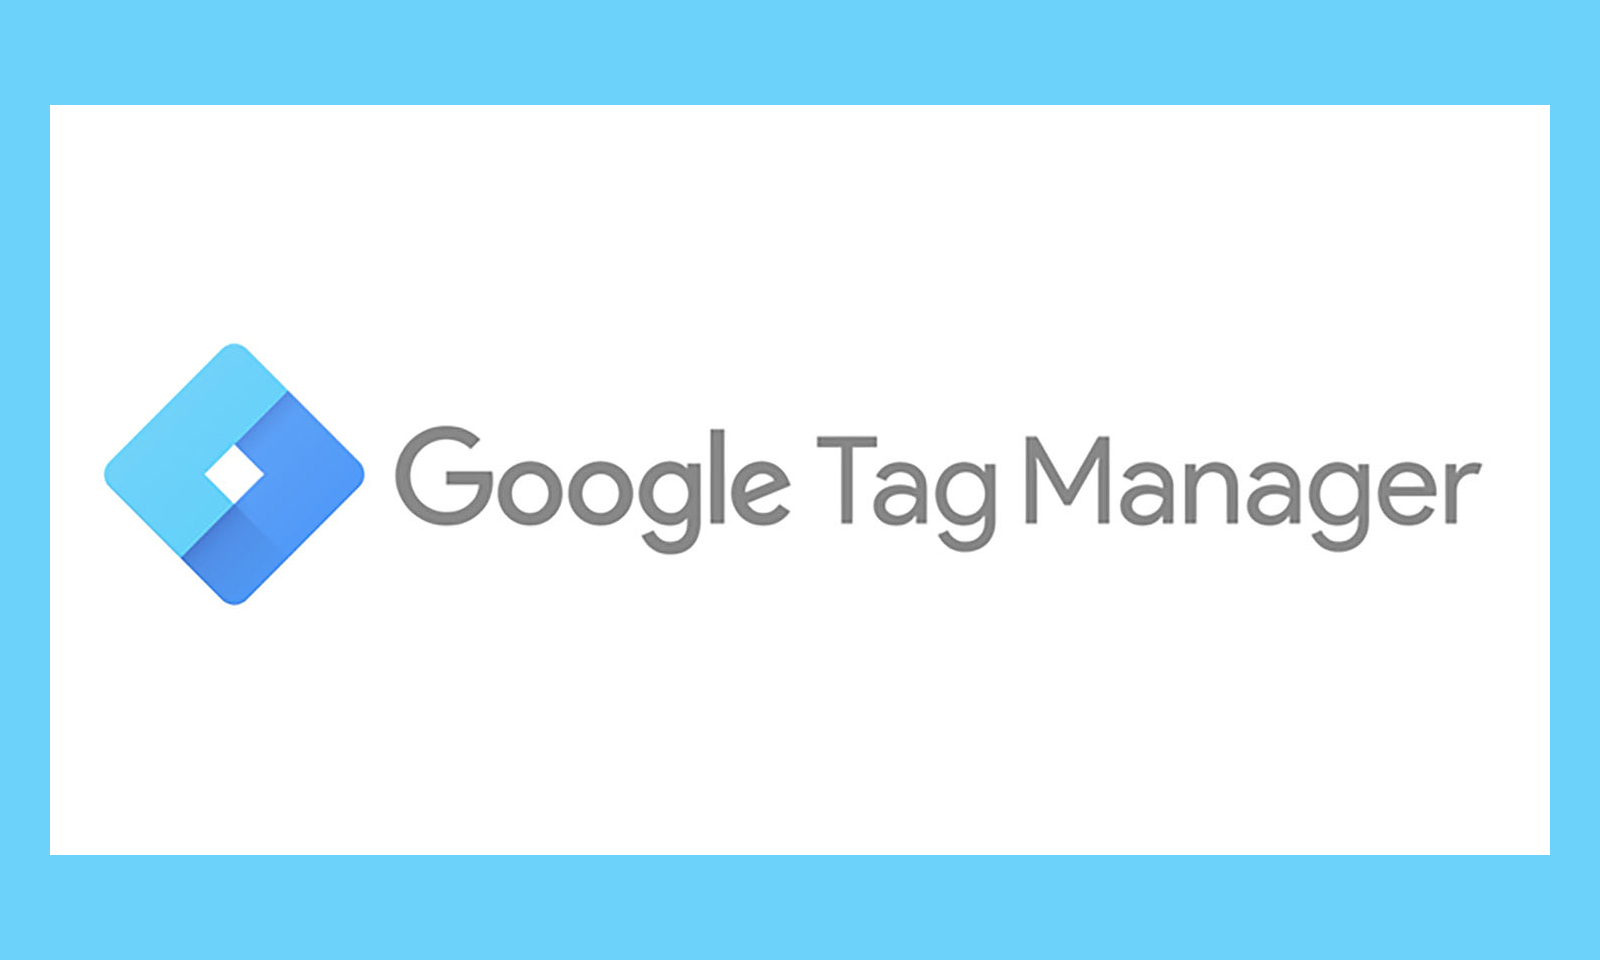 5 Things You Should Know About Google Tag Manager - But Probably Don't